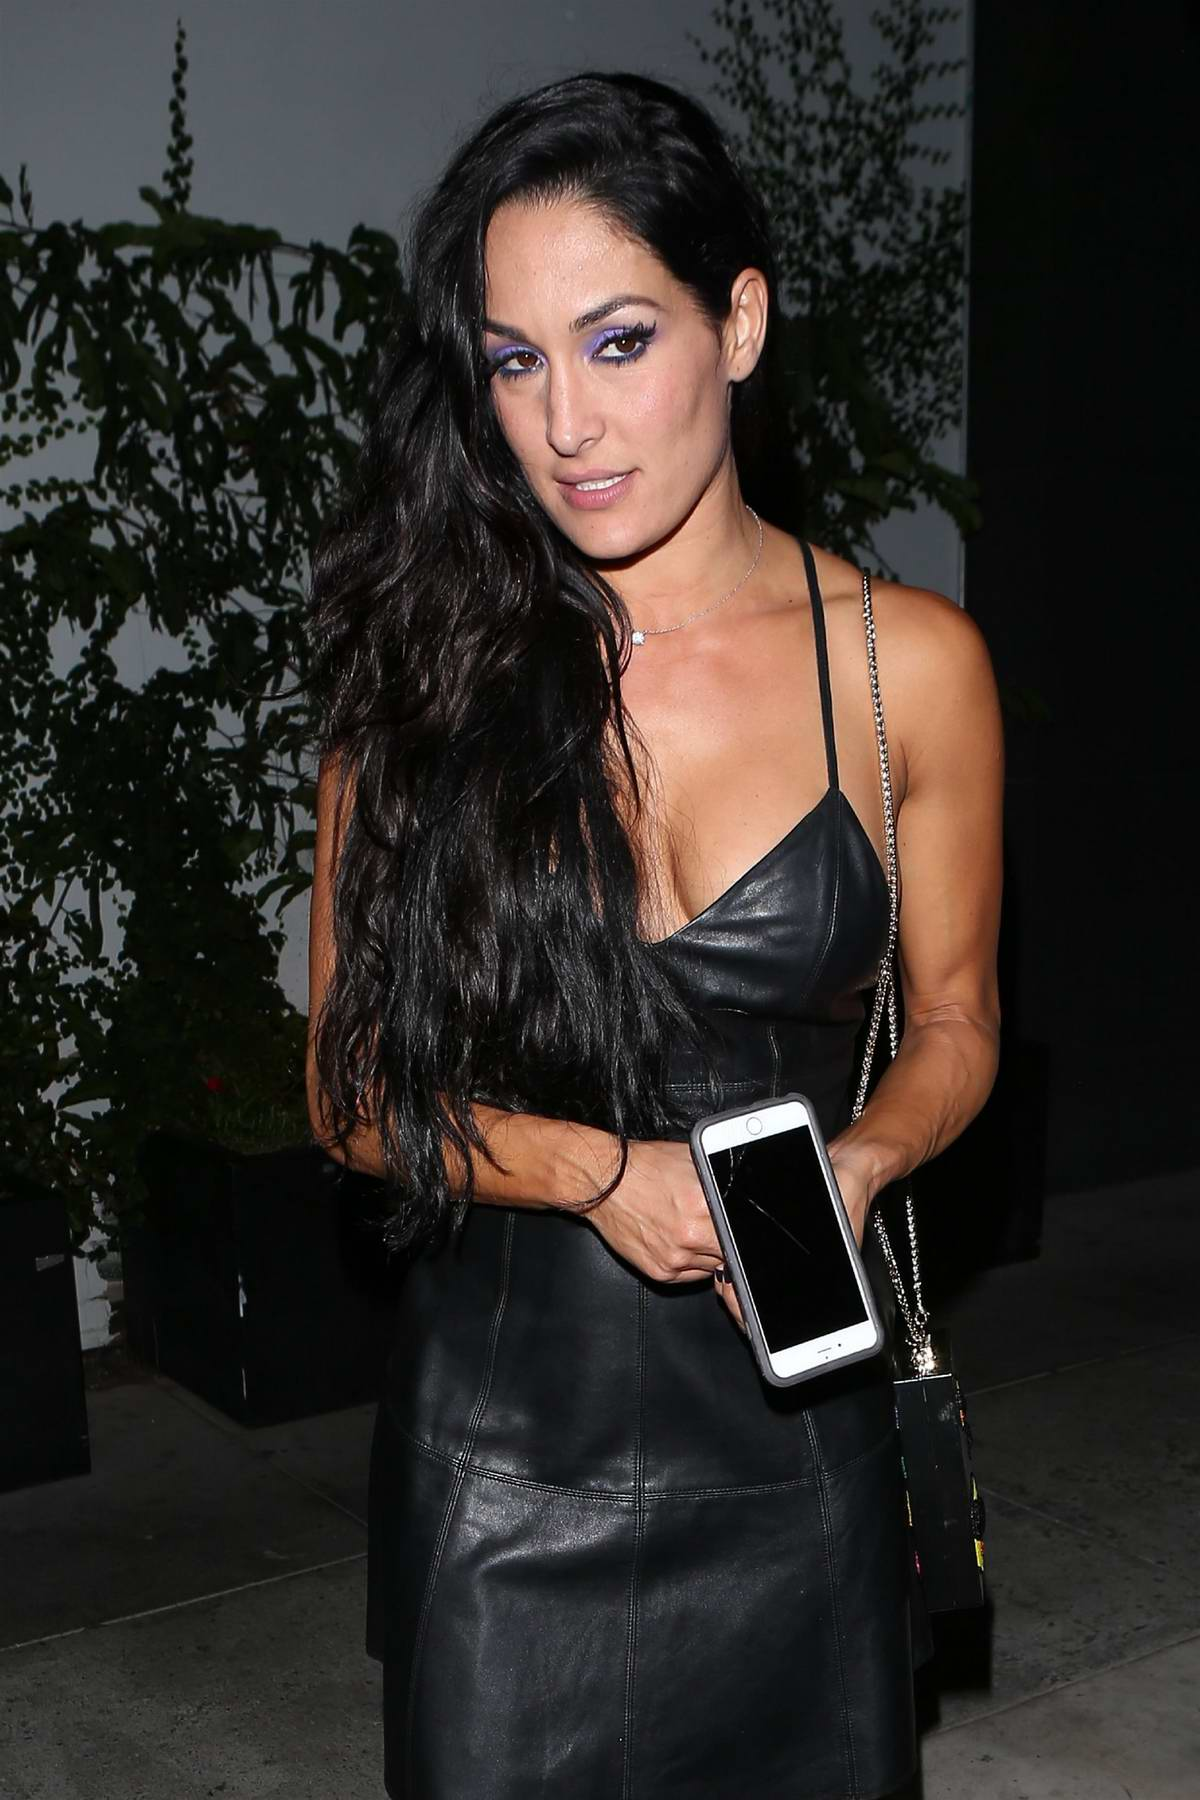 Nikki Bella in a black dress posing for fan photos leaving Beauty and Essex in Hollywood, Los Angeles